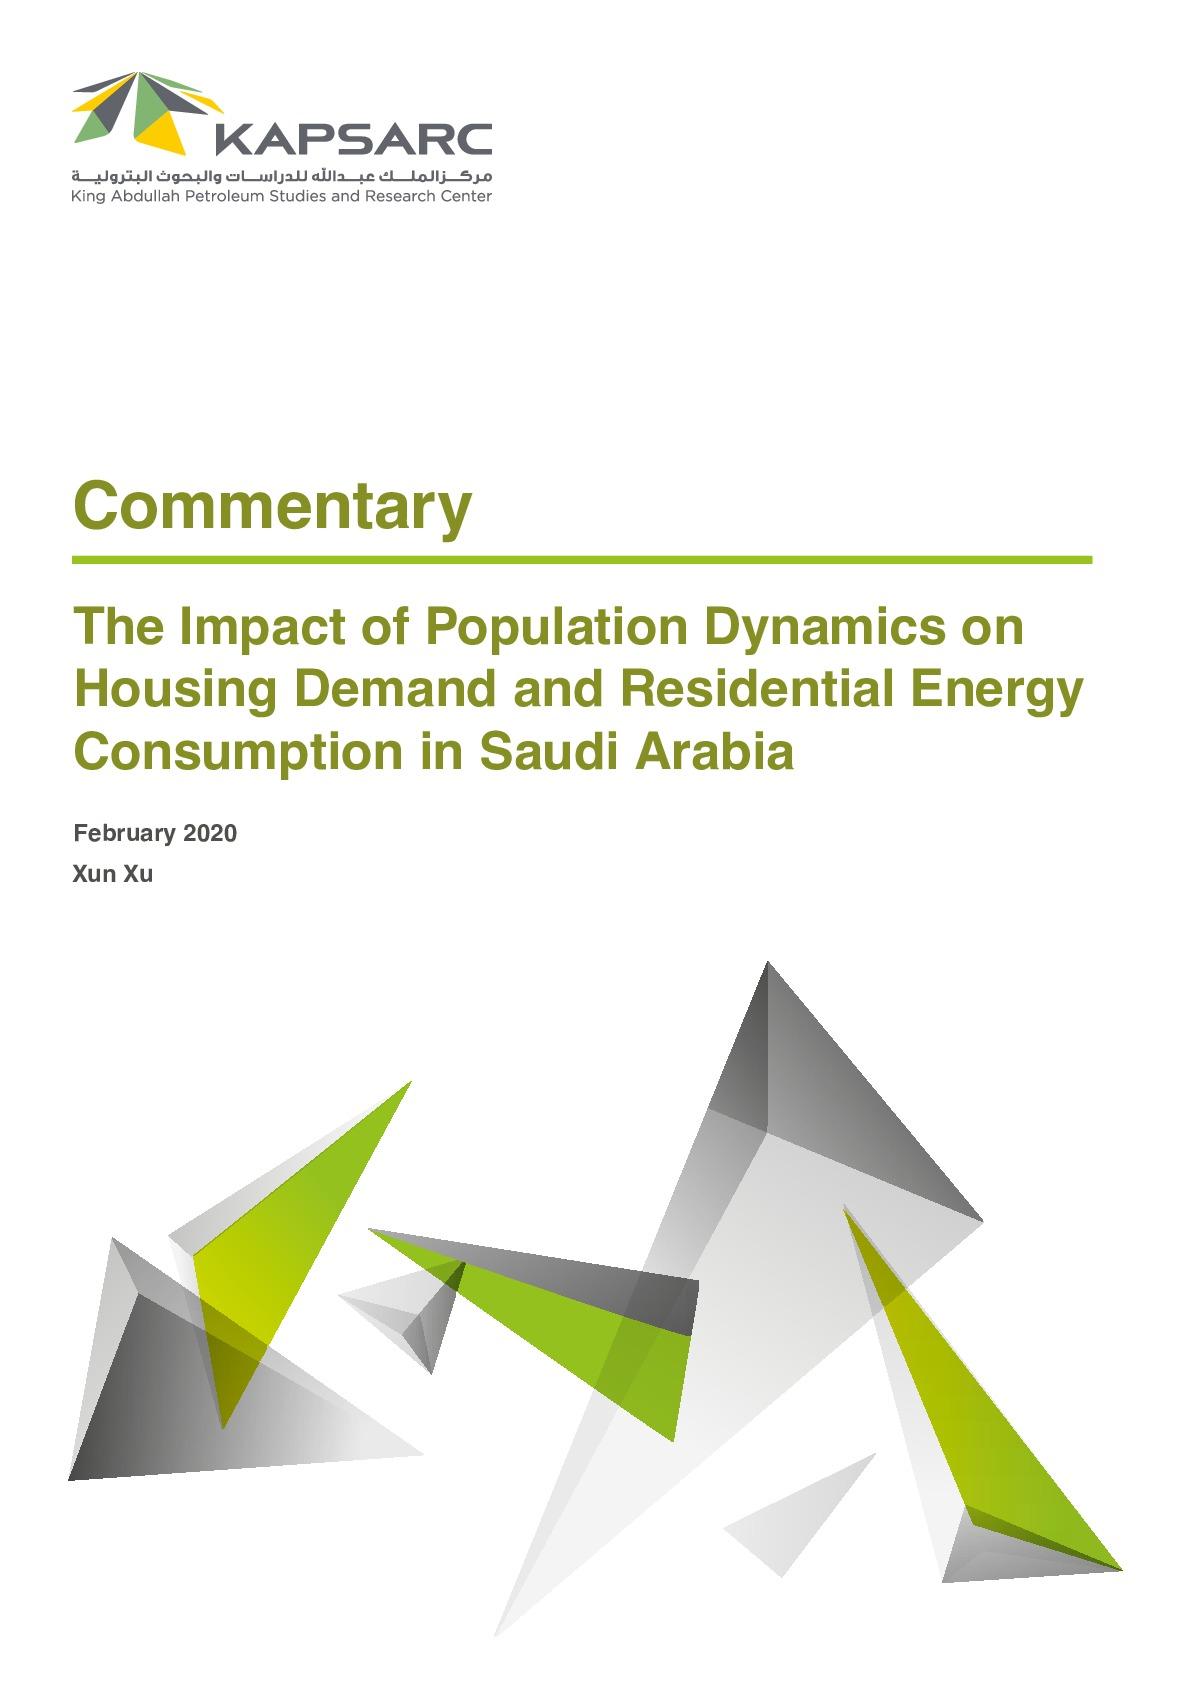 The Impact of Population Dynamics on Housing Demand and Residential Energy Consumption in Saudi Arabia